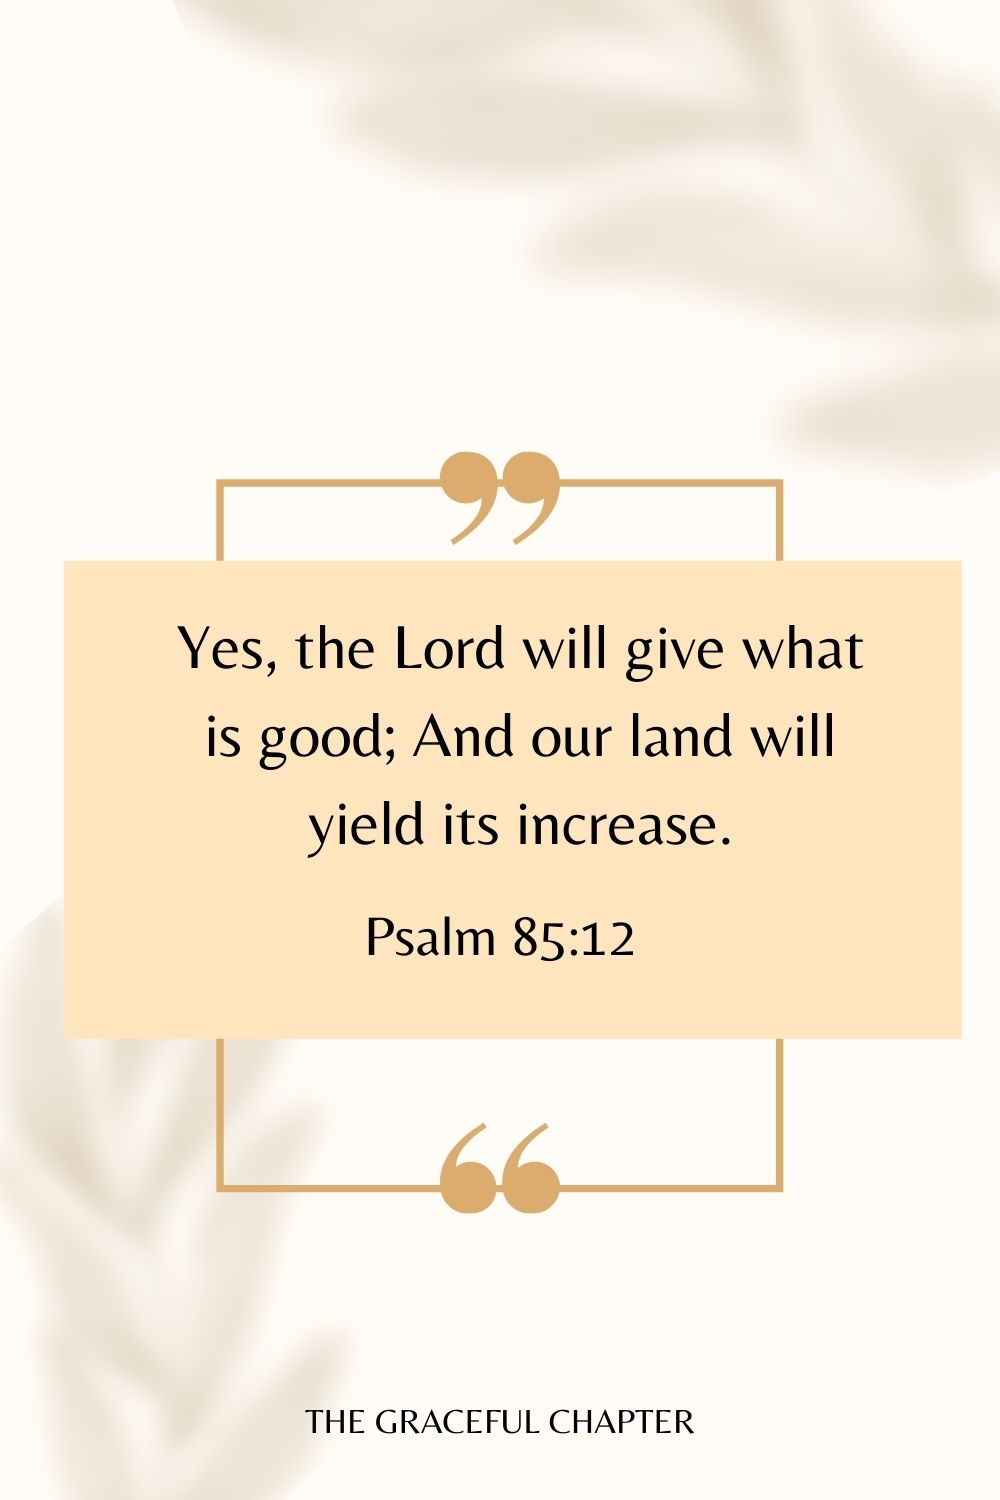 Yes, the Lord will give what is good; And our land will yield its increase. Psalm 85:12